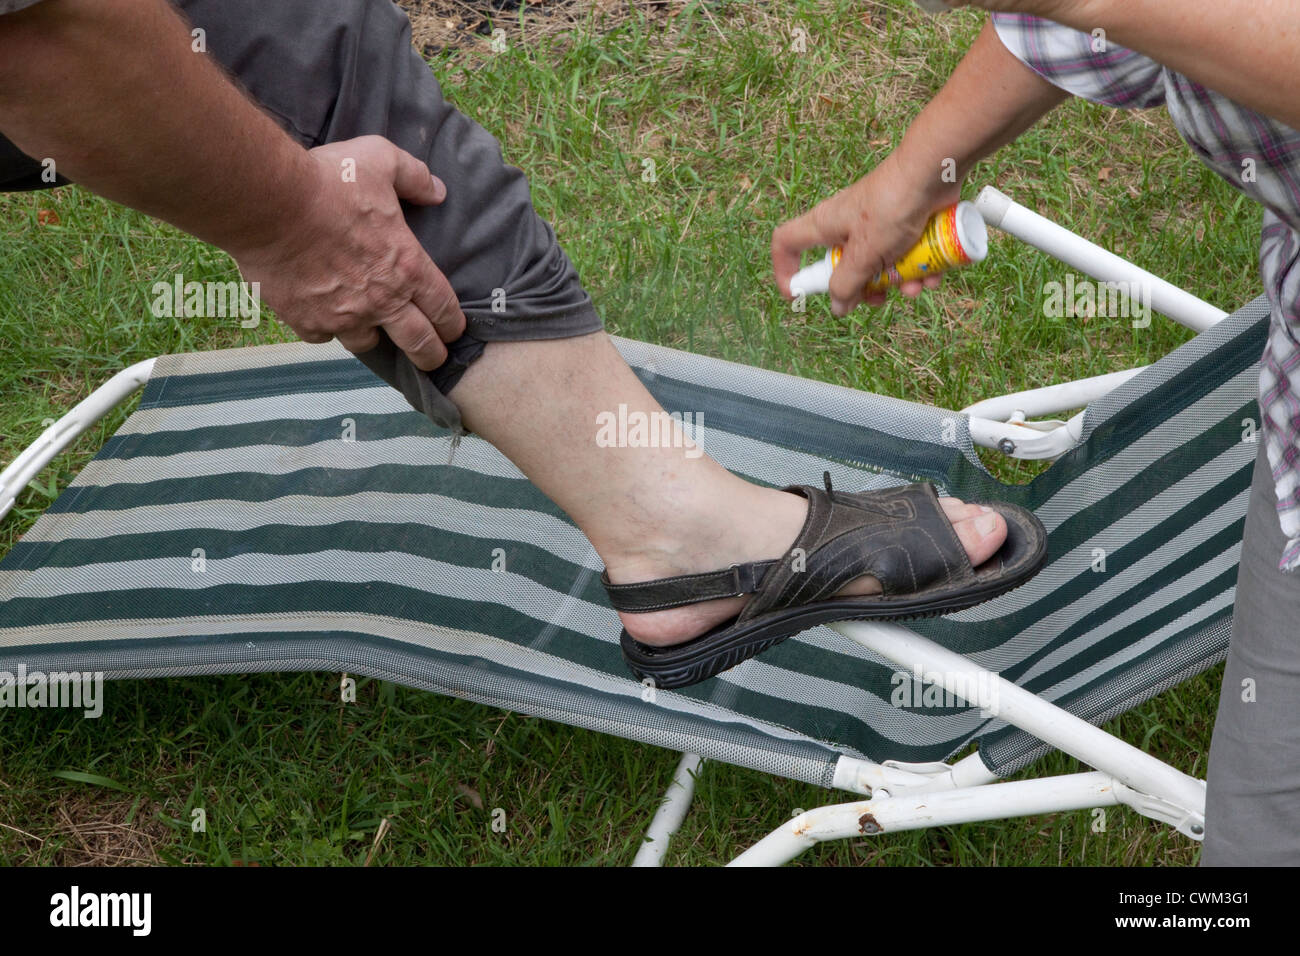 Applying aerosol spray of Mosquito repellent to bare ankle. Zawady Central Poland - Stock Image